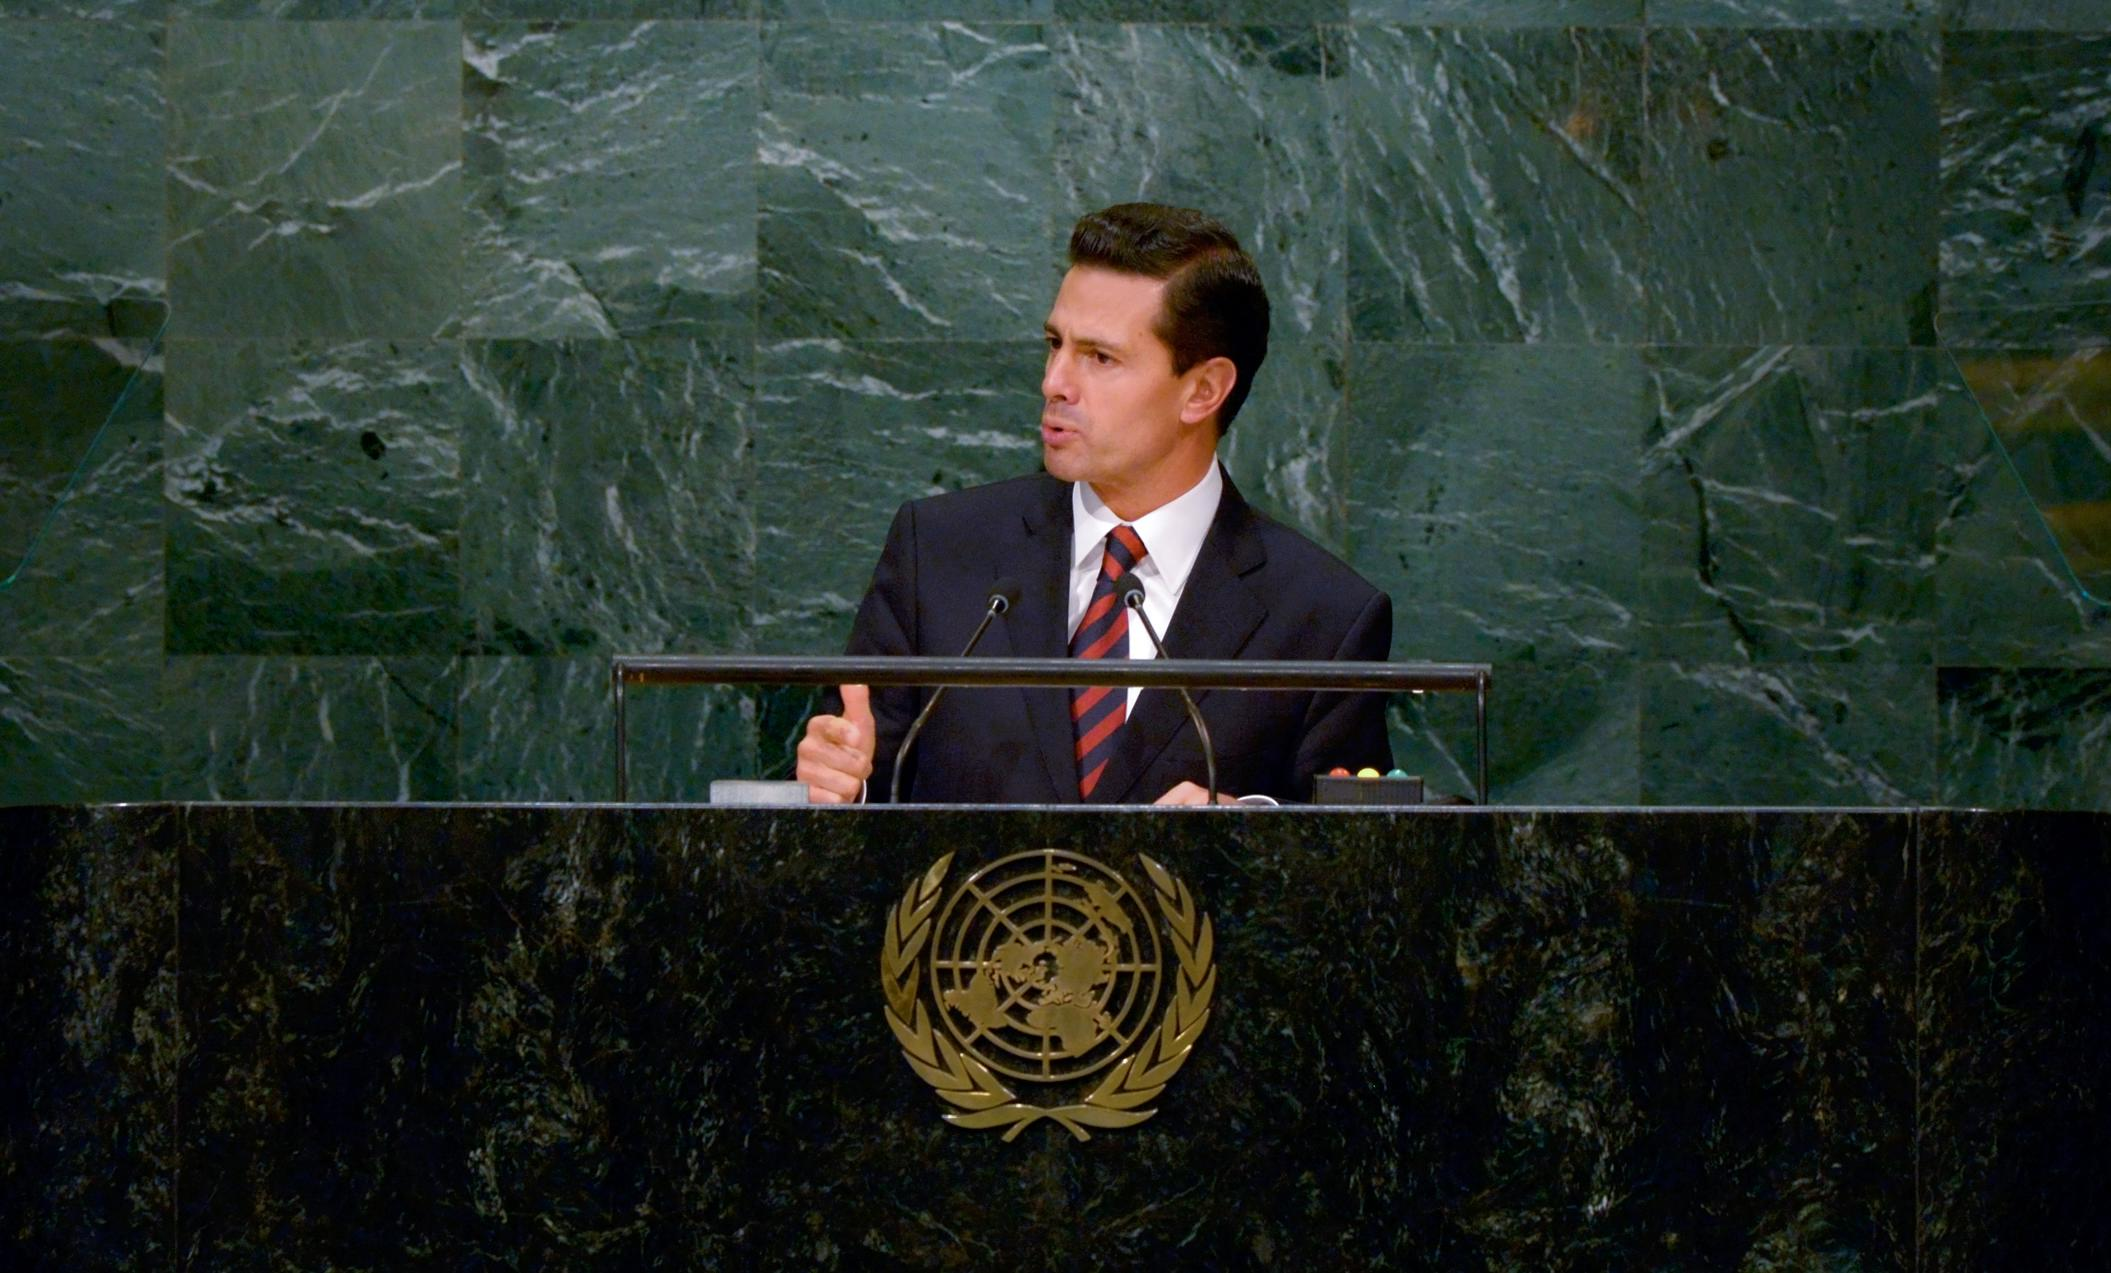 President Enrique Peña Nieto participated in the General Debate of the 71st Session of the United Nations (UN) General Assembly.